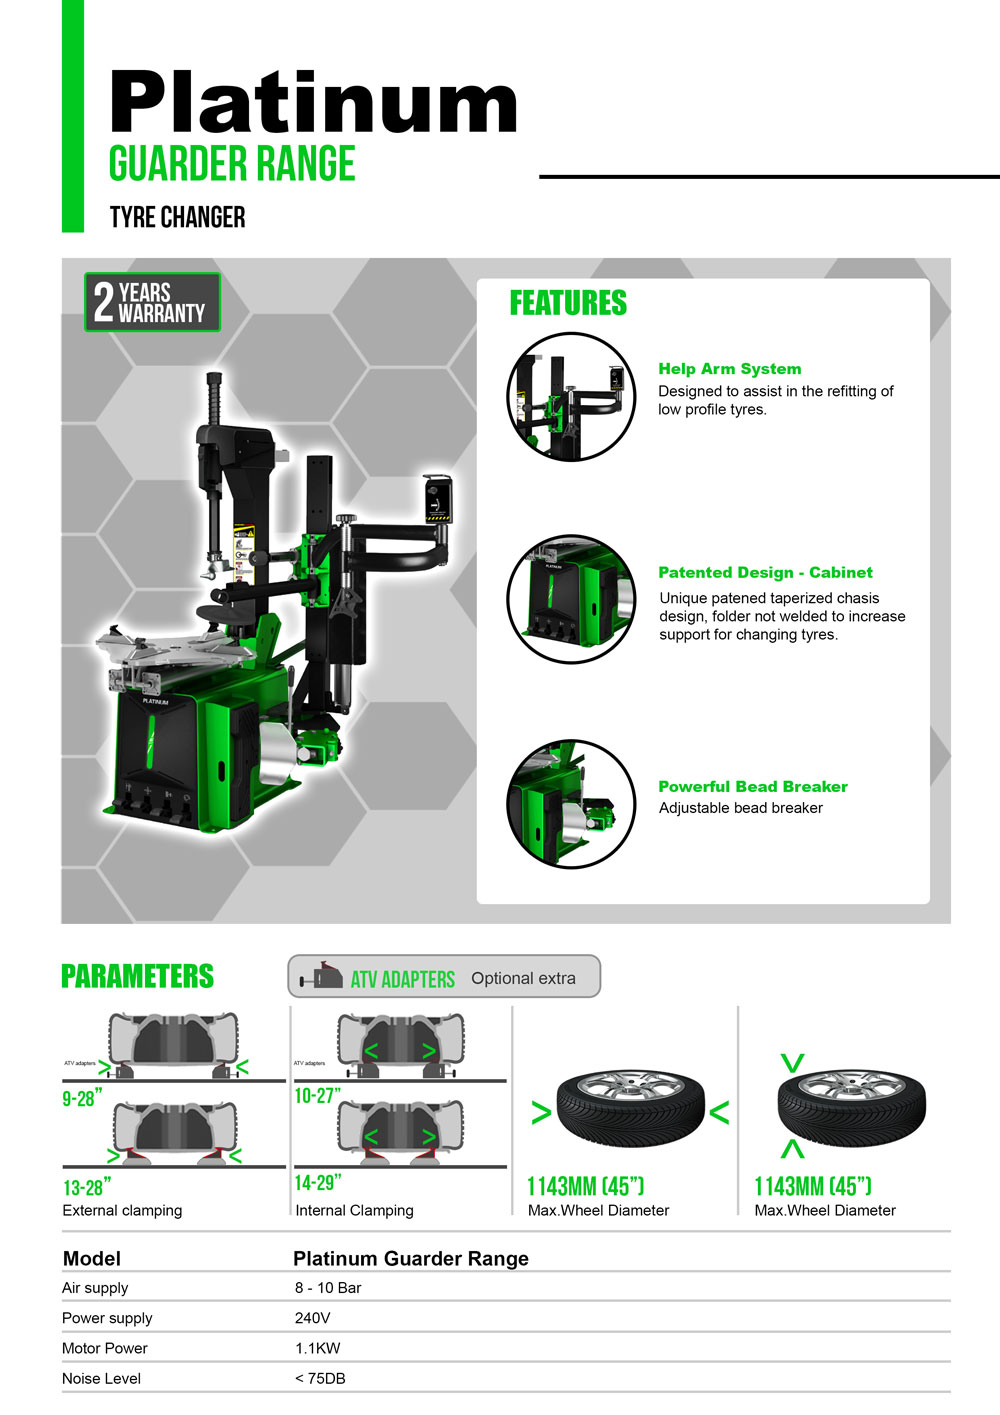 information flyer for platinum g22 fully automatic tyre changer